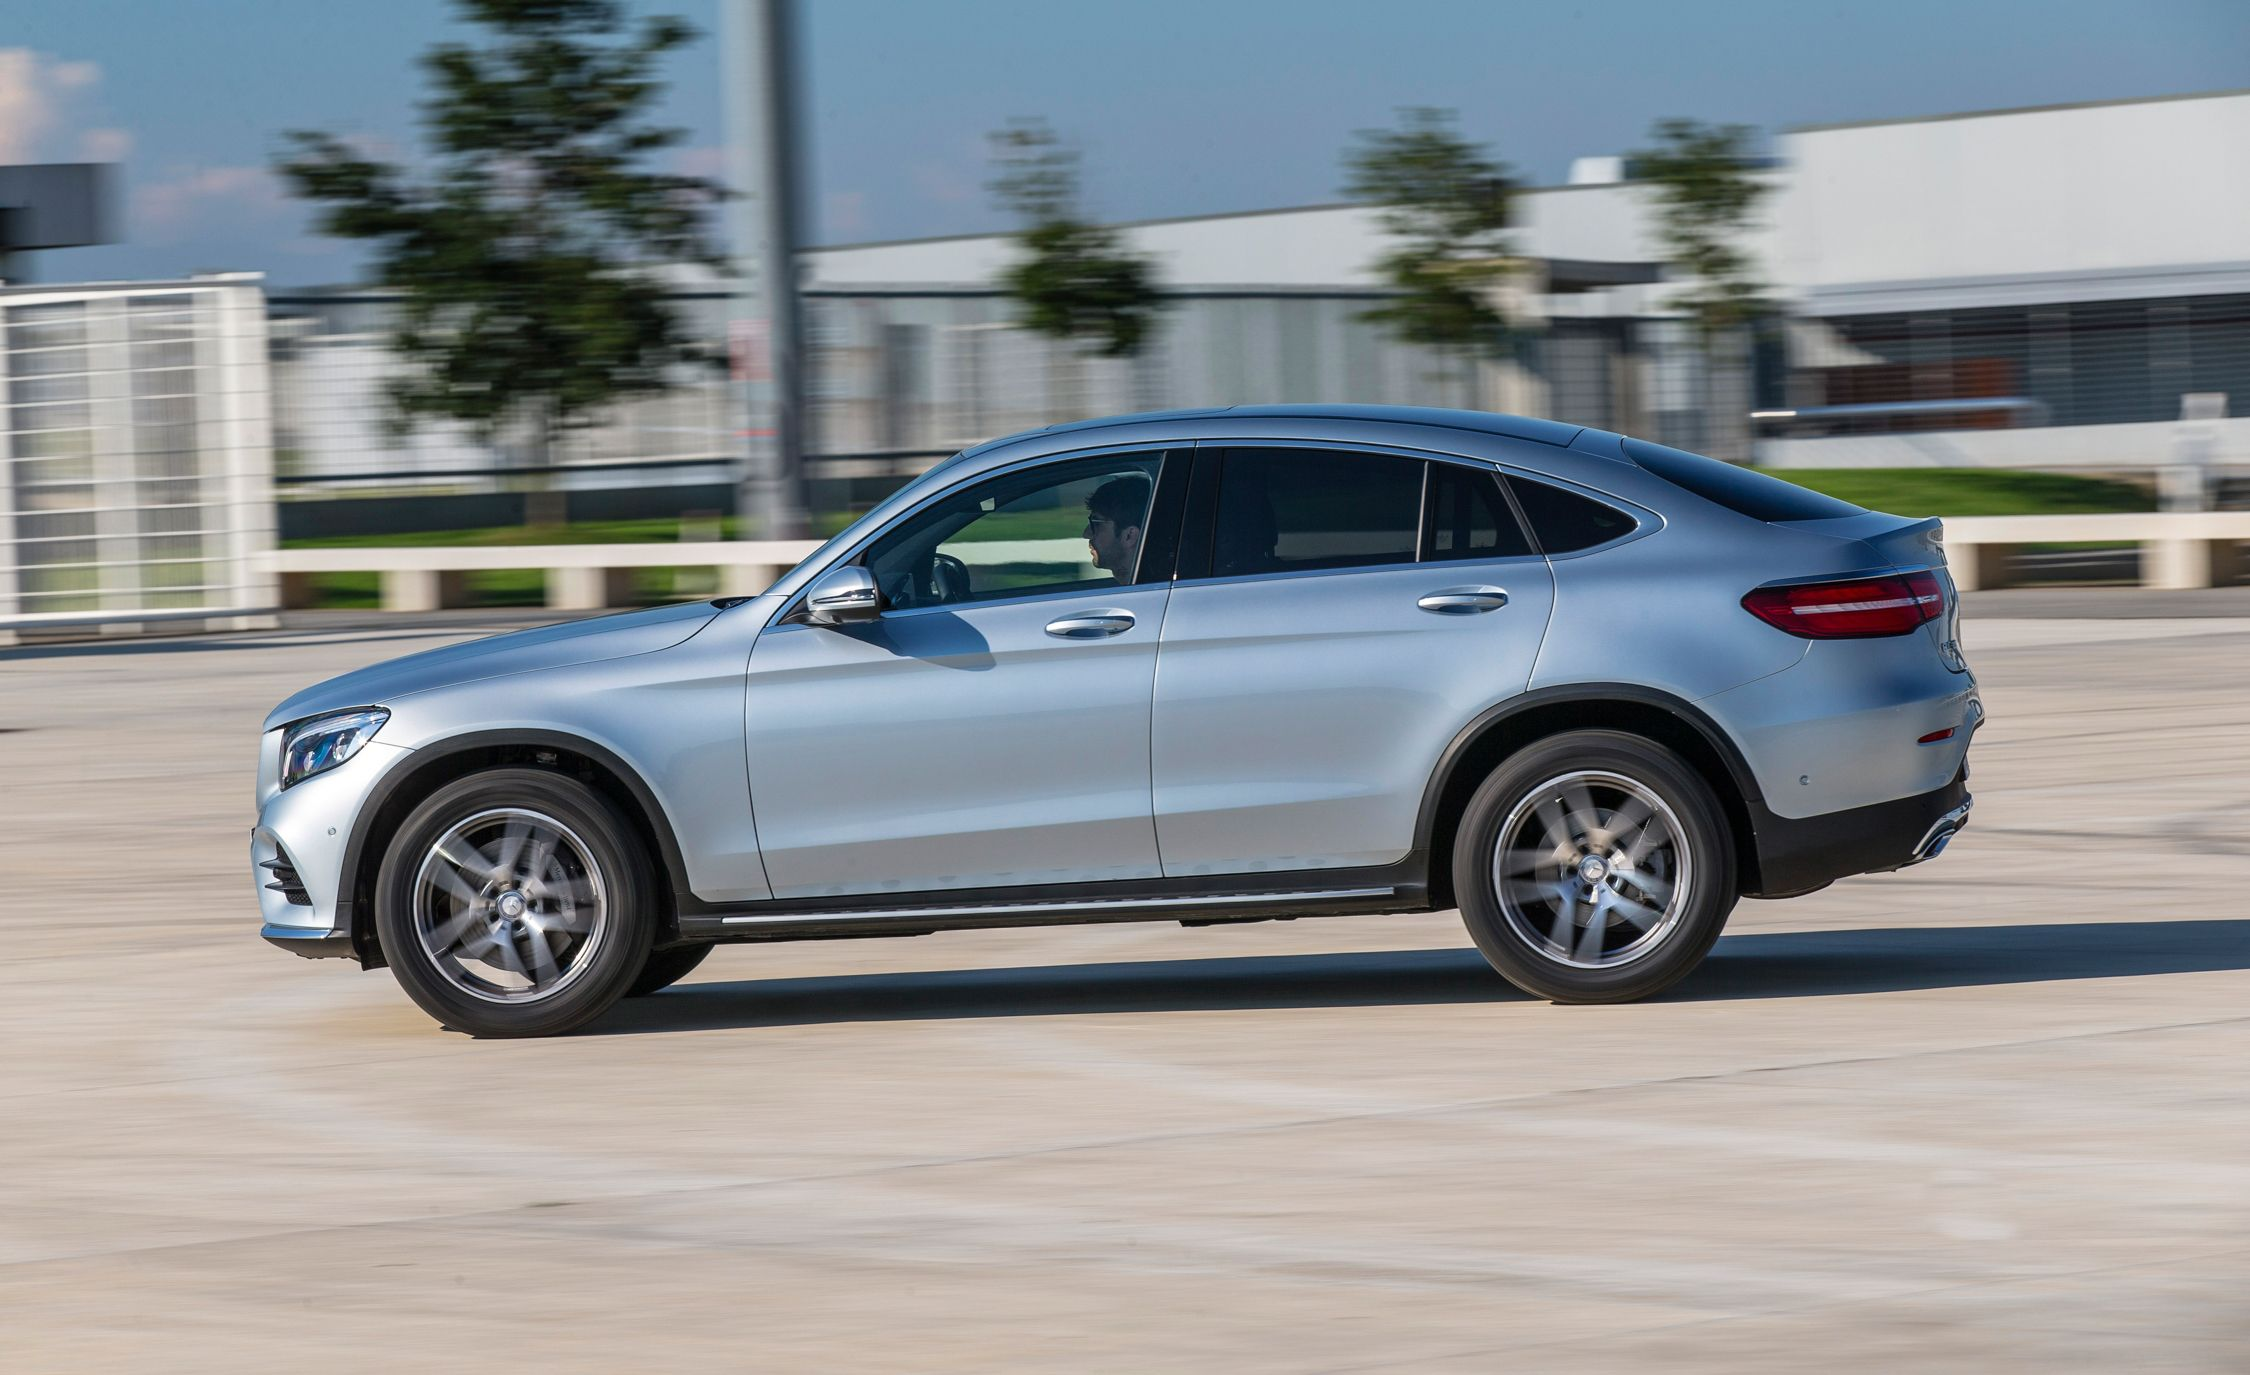 https://hips.hearstapps.com/amv-prod-cad-assets.s3.amazonaws.com/wp-content/uploads/2016/07/2017-Mercedes-Benz-GLC300-4MATIC-coupe-102.jpg